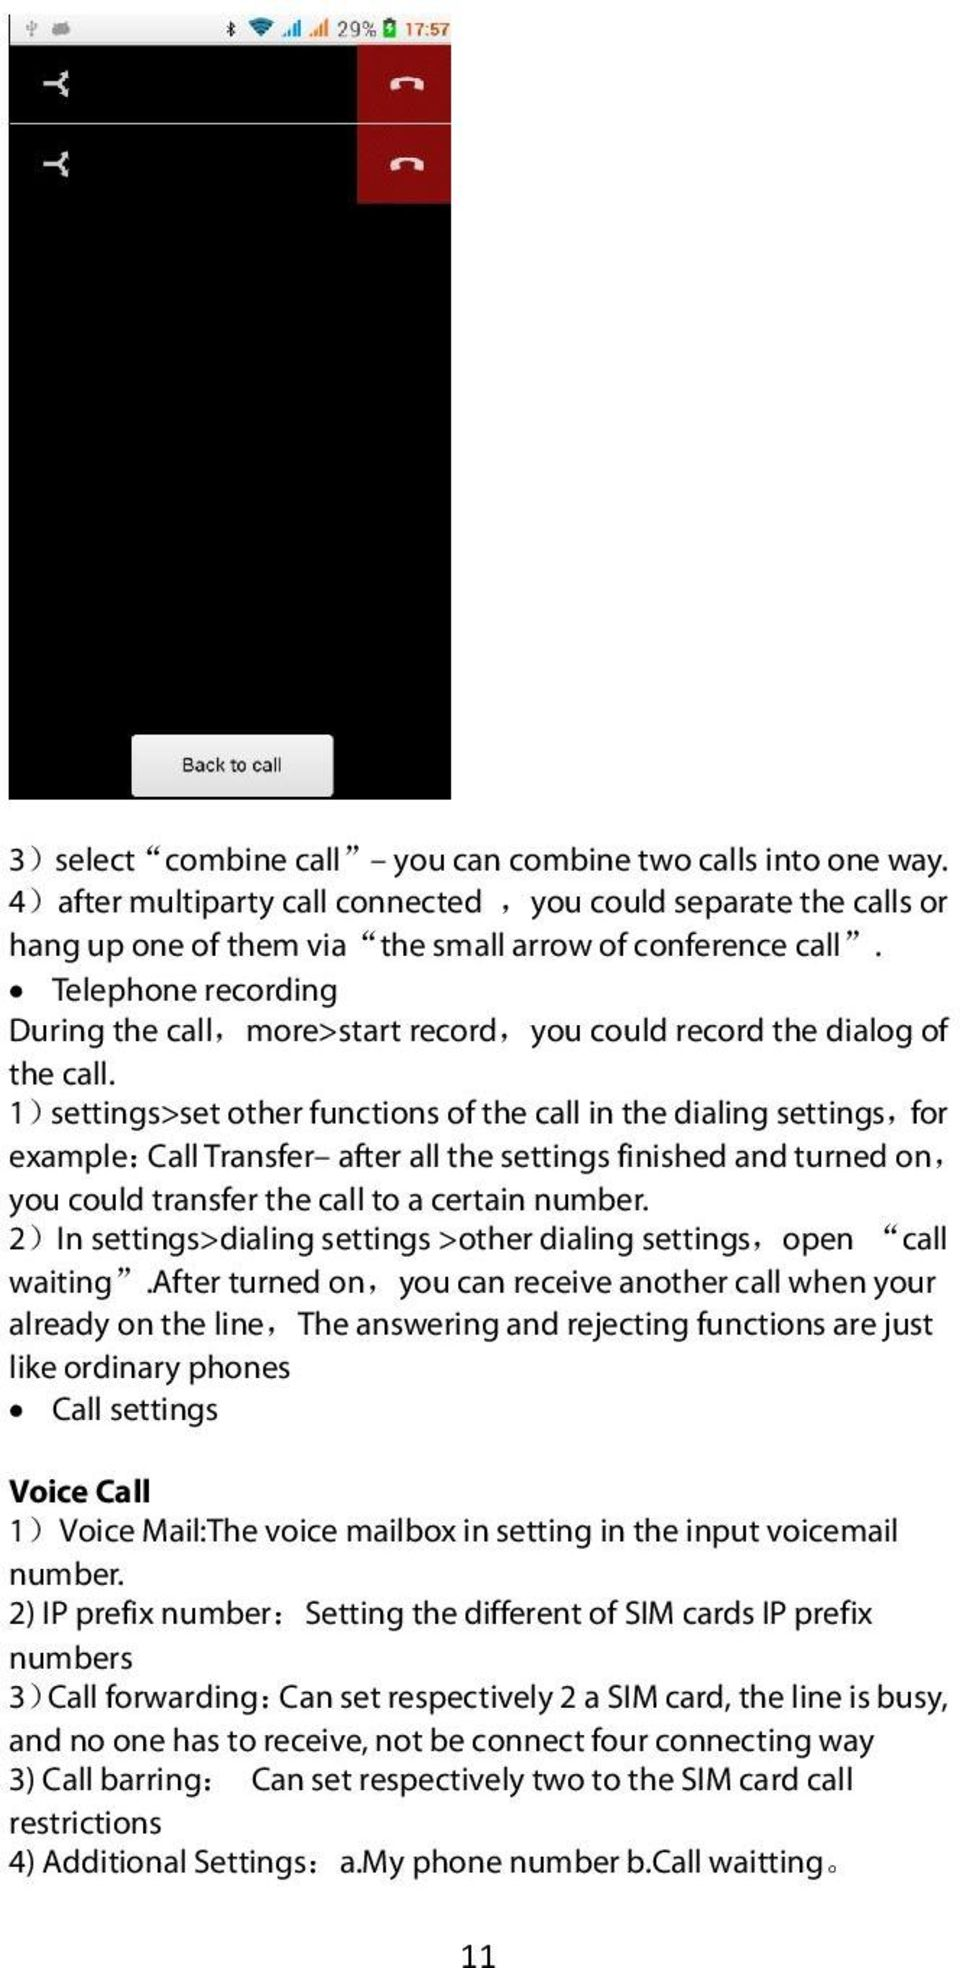 1)settings>set other functions of the call in the dialing settings,for example:call Transfer after all the settings finished and turned on, you could transfer the call to a certain number.